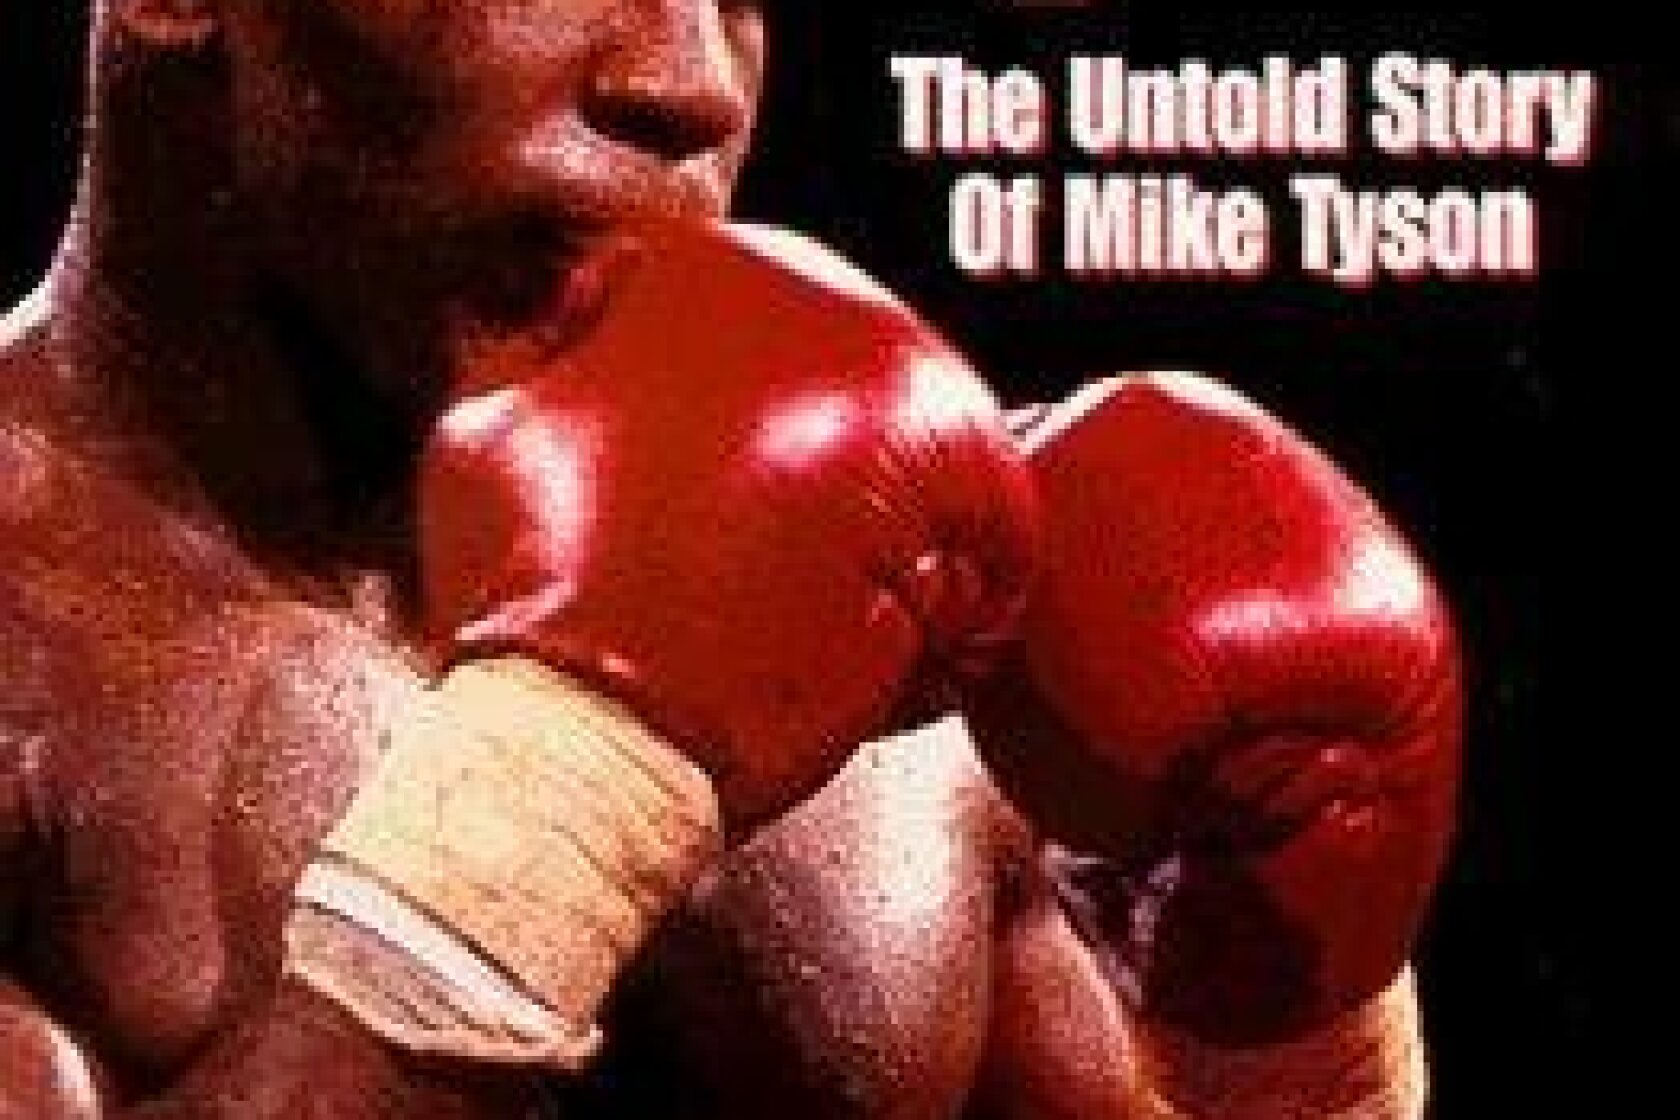 Review Mike Tyson Undisputed Truth Is A Knockout Los Angeles Times